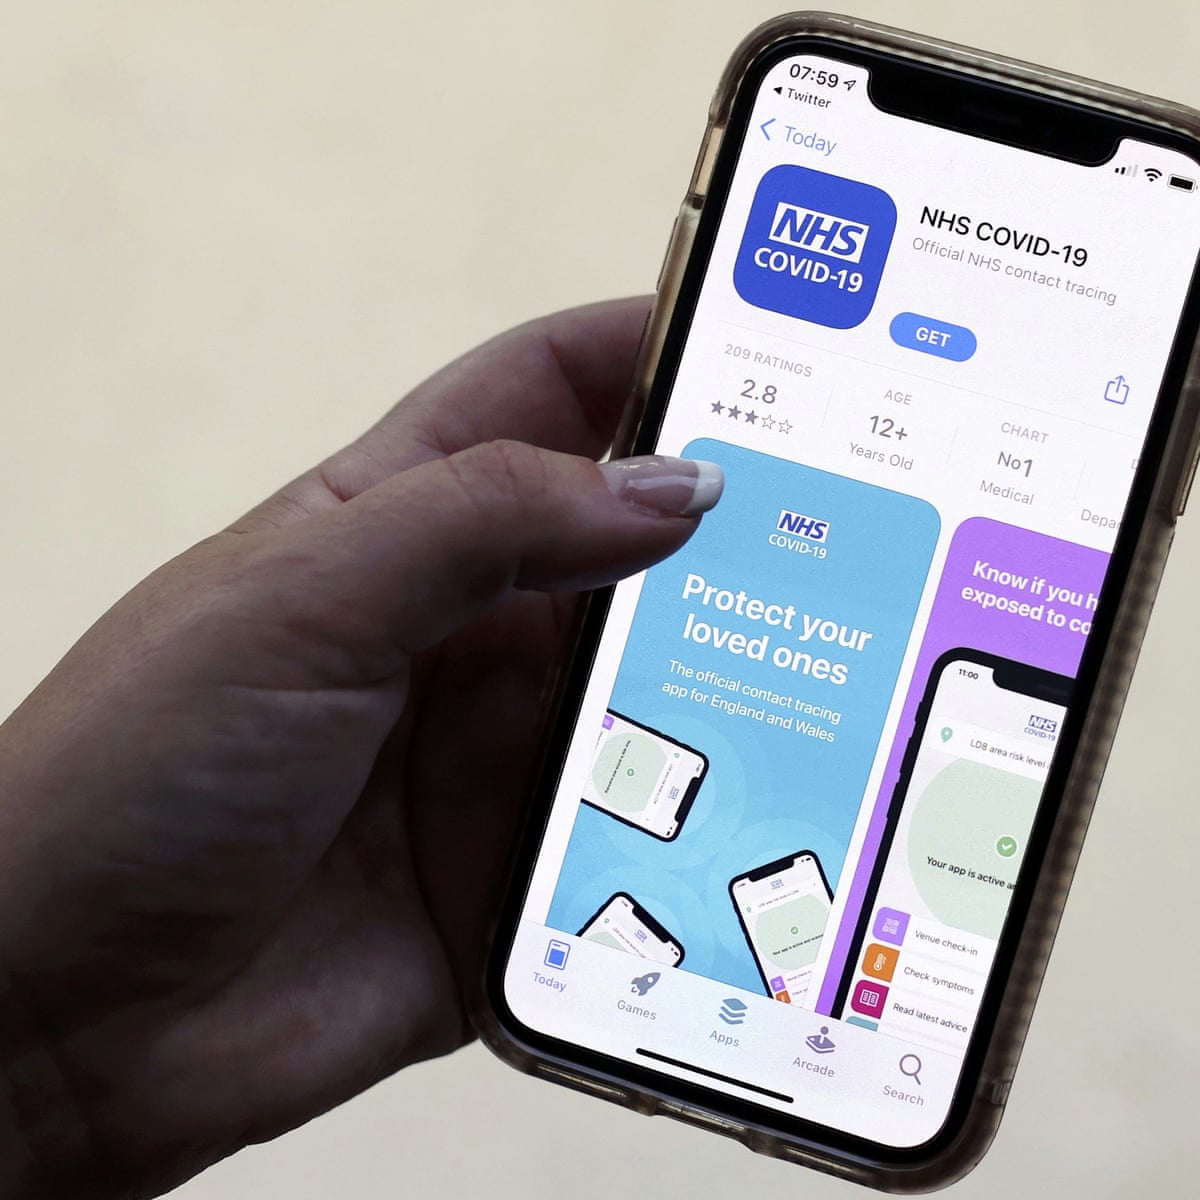 How To Download The Nhs Covid 19 Contact Tracing App Apps The Guardian